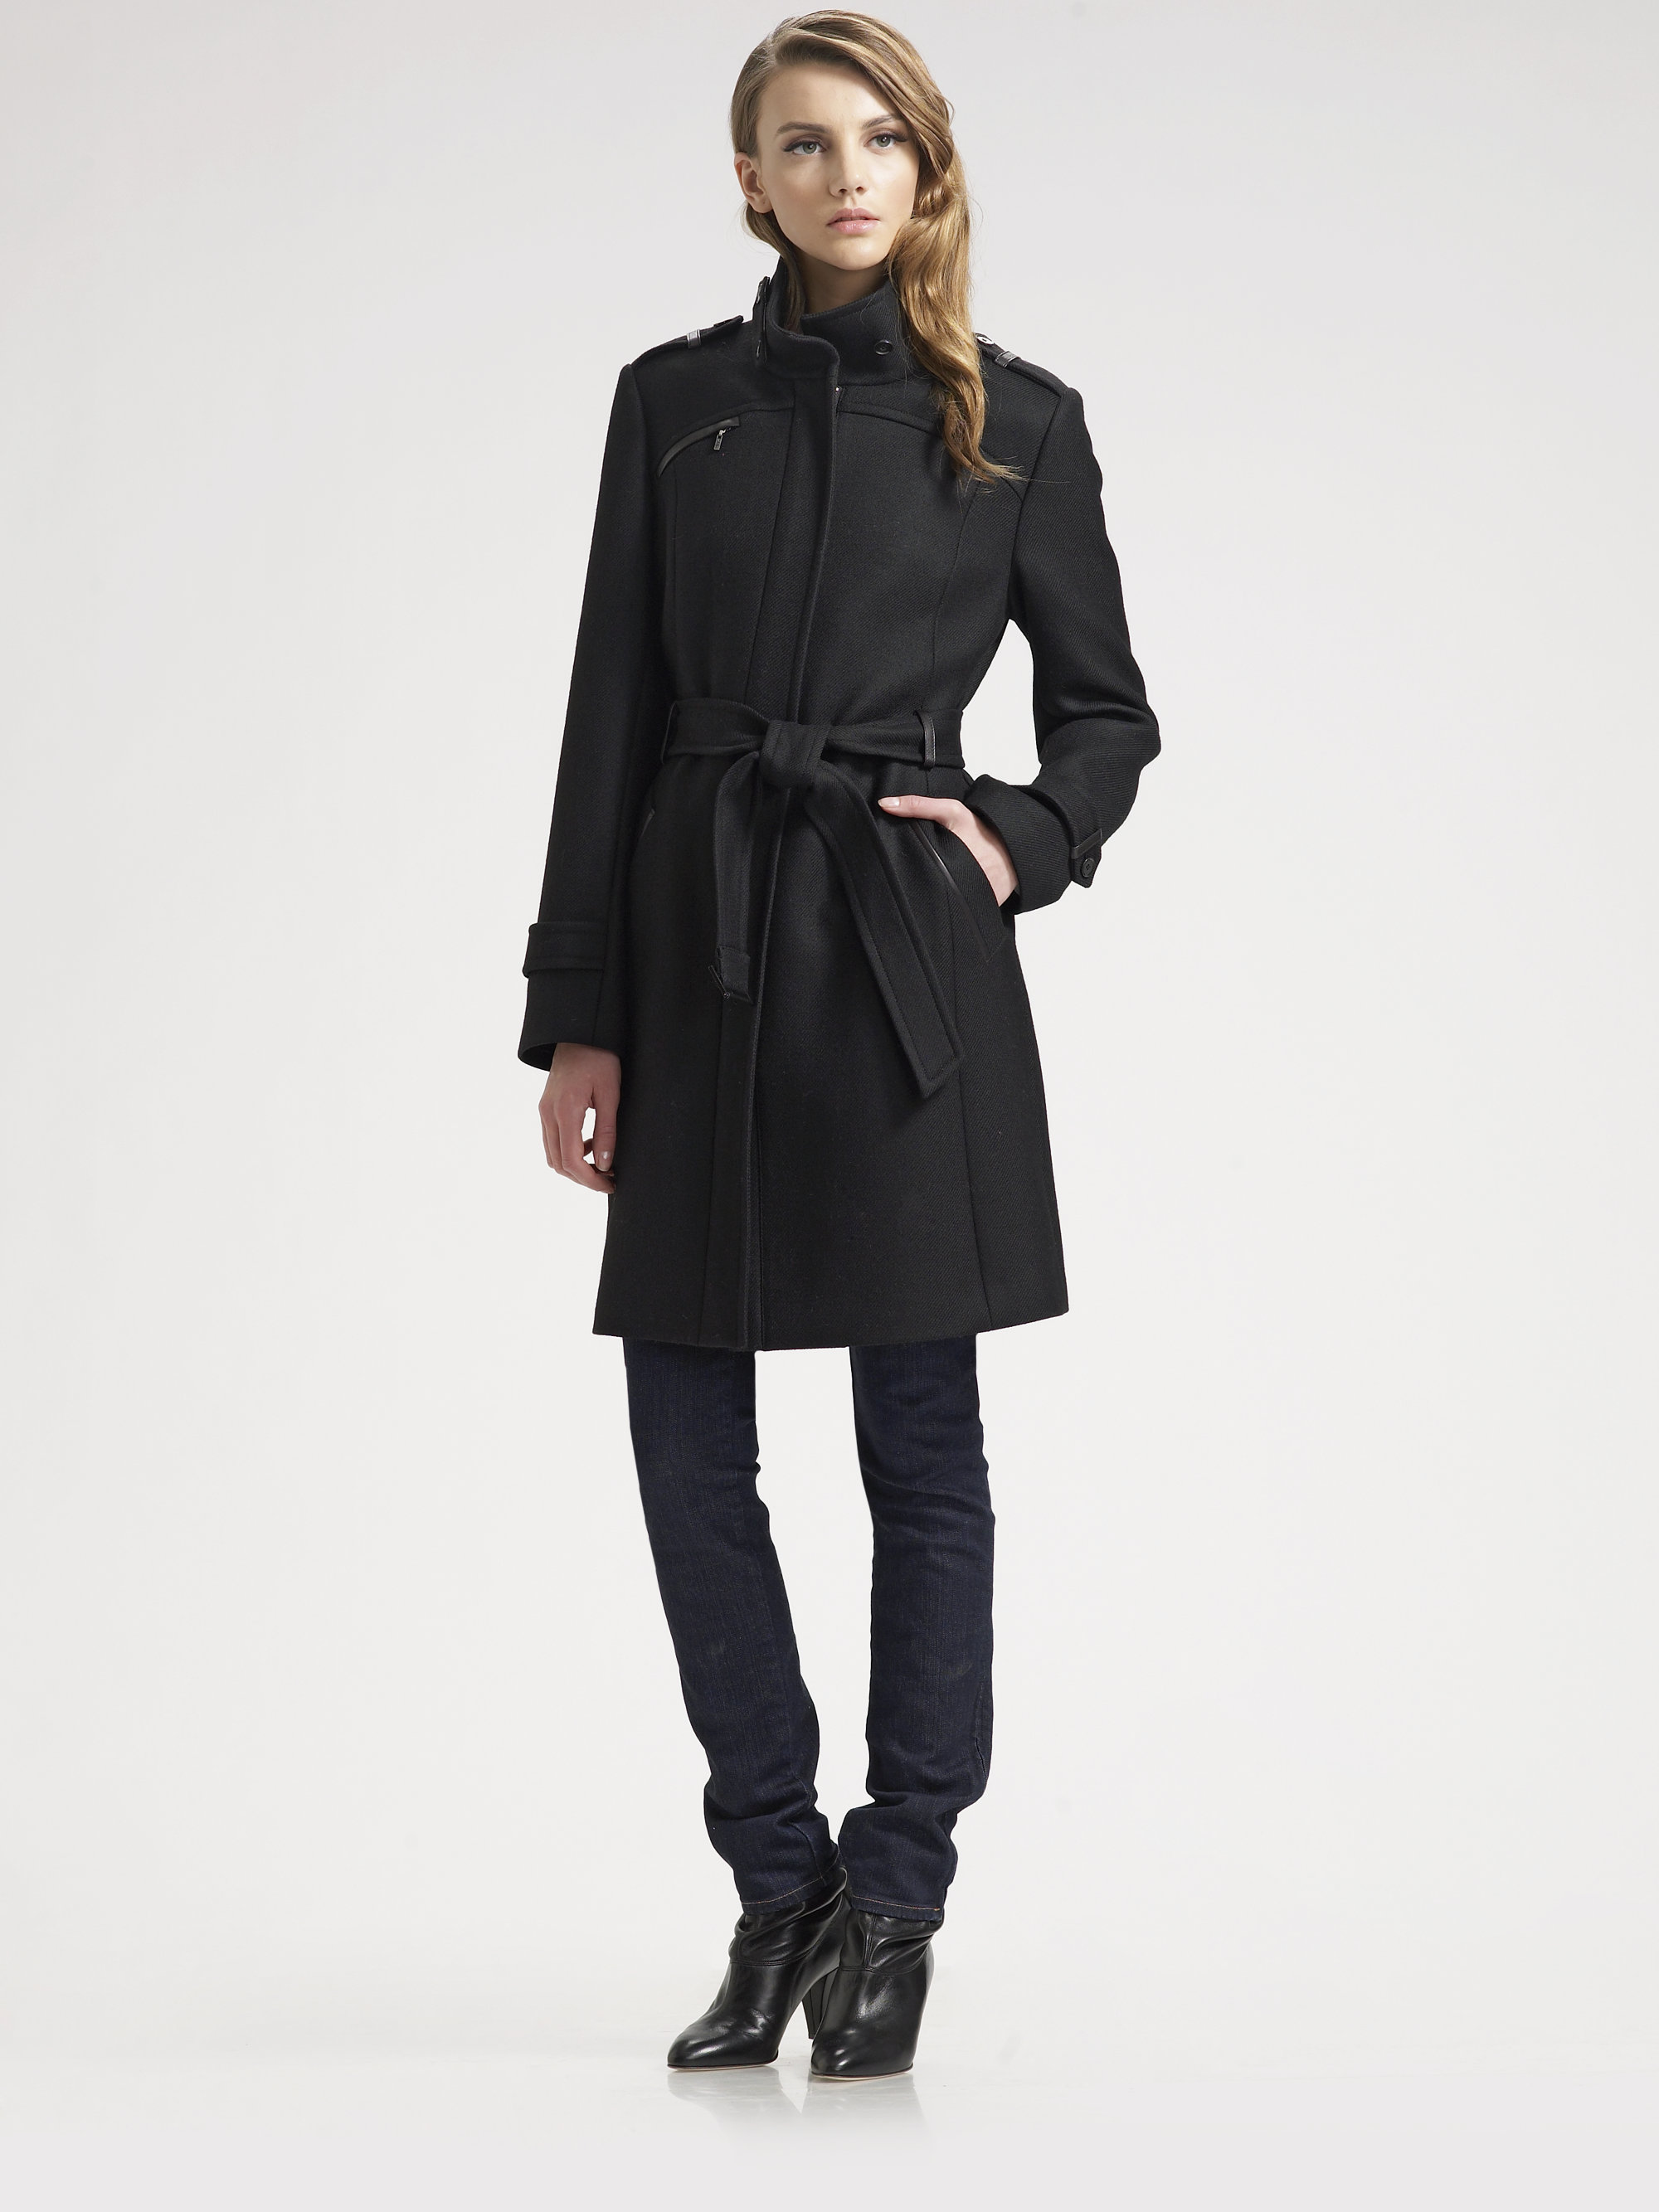 Shop the Belted Zip Trench Coat In Wool Melton at shopnew-5uel8qry.cf and see our entire selection of Women's Coats & Jackets.